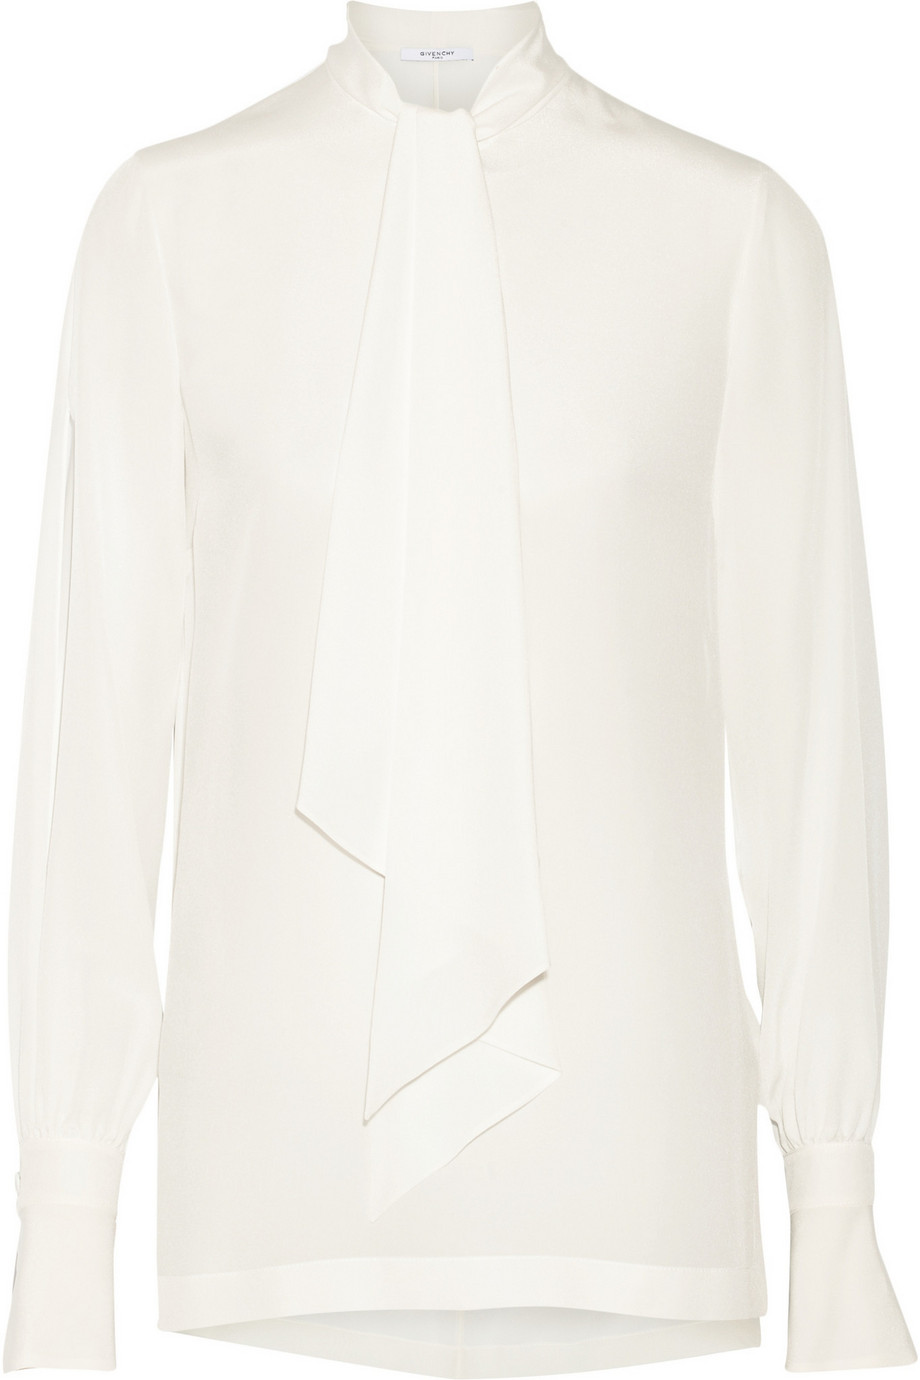 Givenchy Pussy-Bow Blouse in Ivory Silk Crepe De Chine, Women's, Size: 34